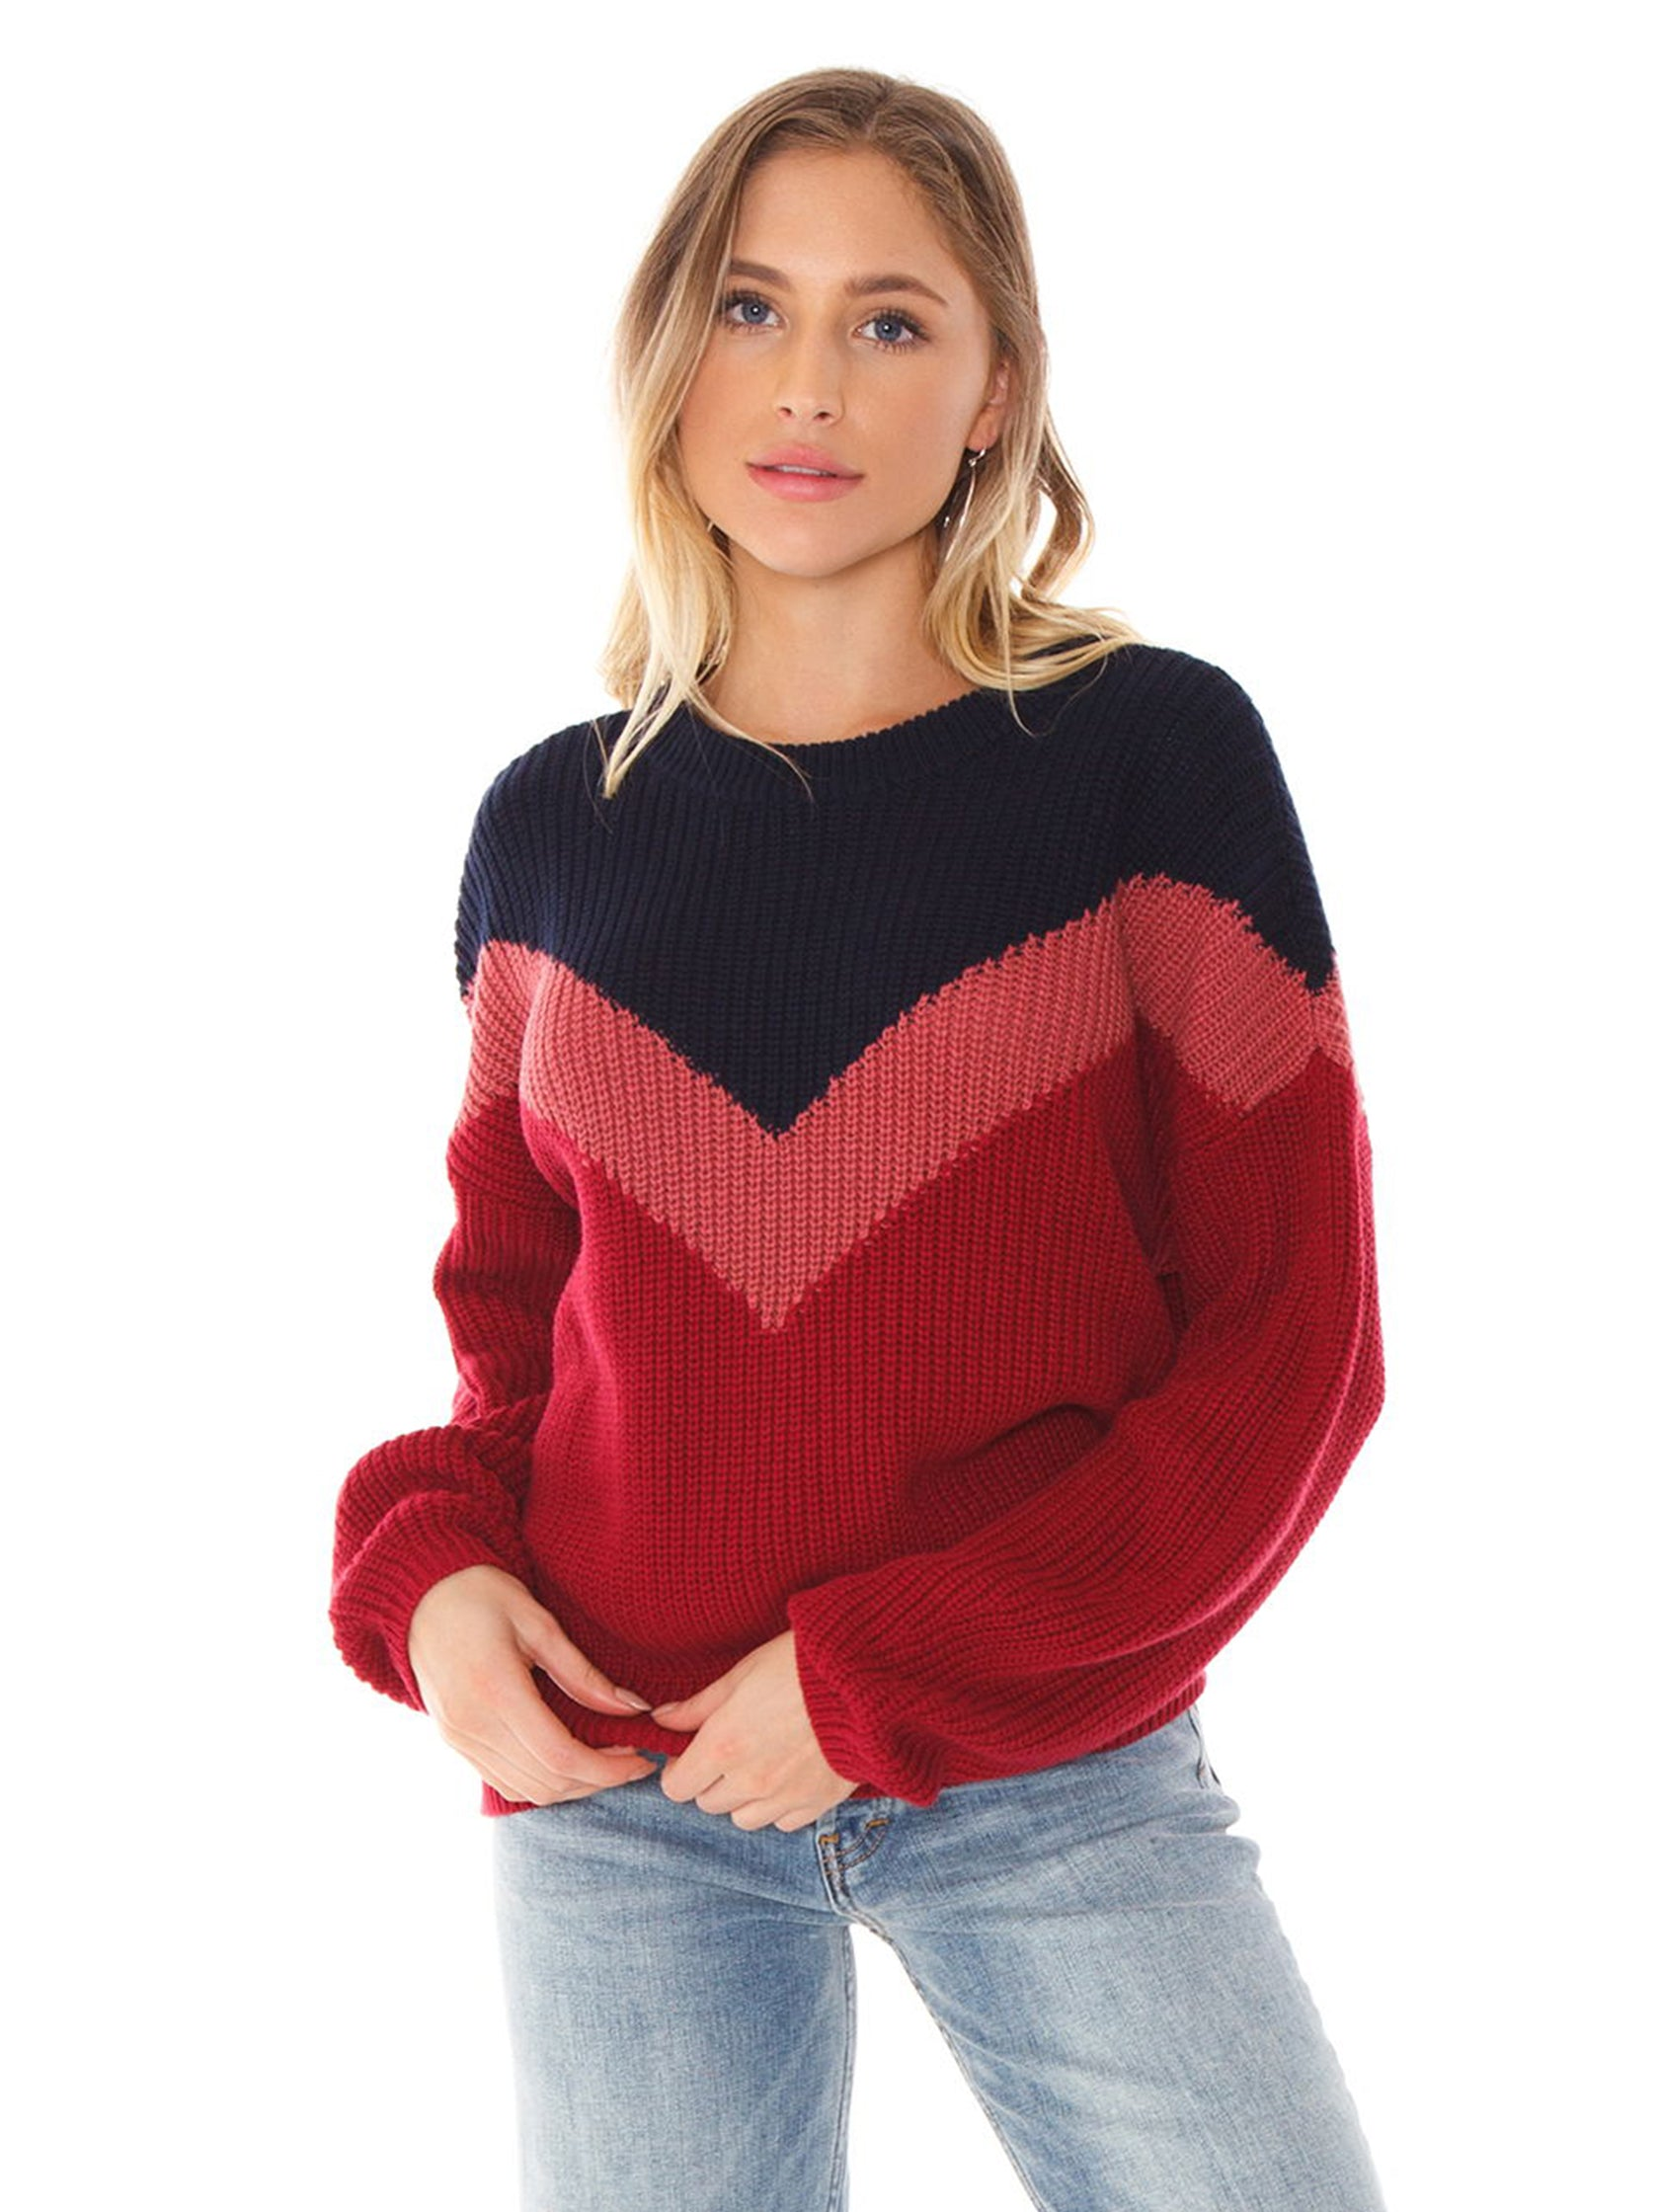 Woman wearing a sweater rental from 1.STATE called Chevron Front Shaker Crew Neck Cotton Sweater